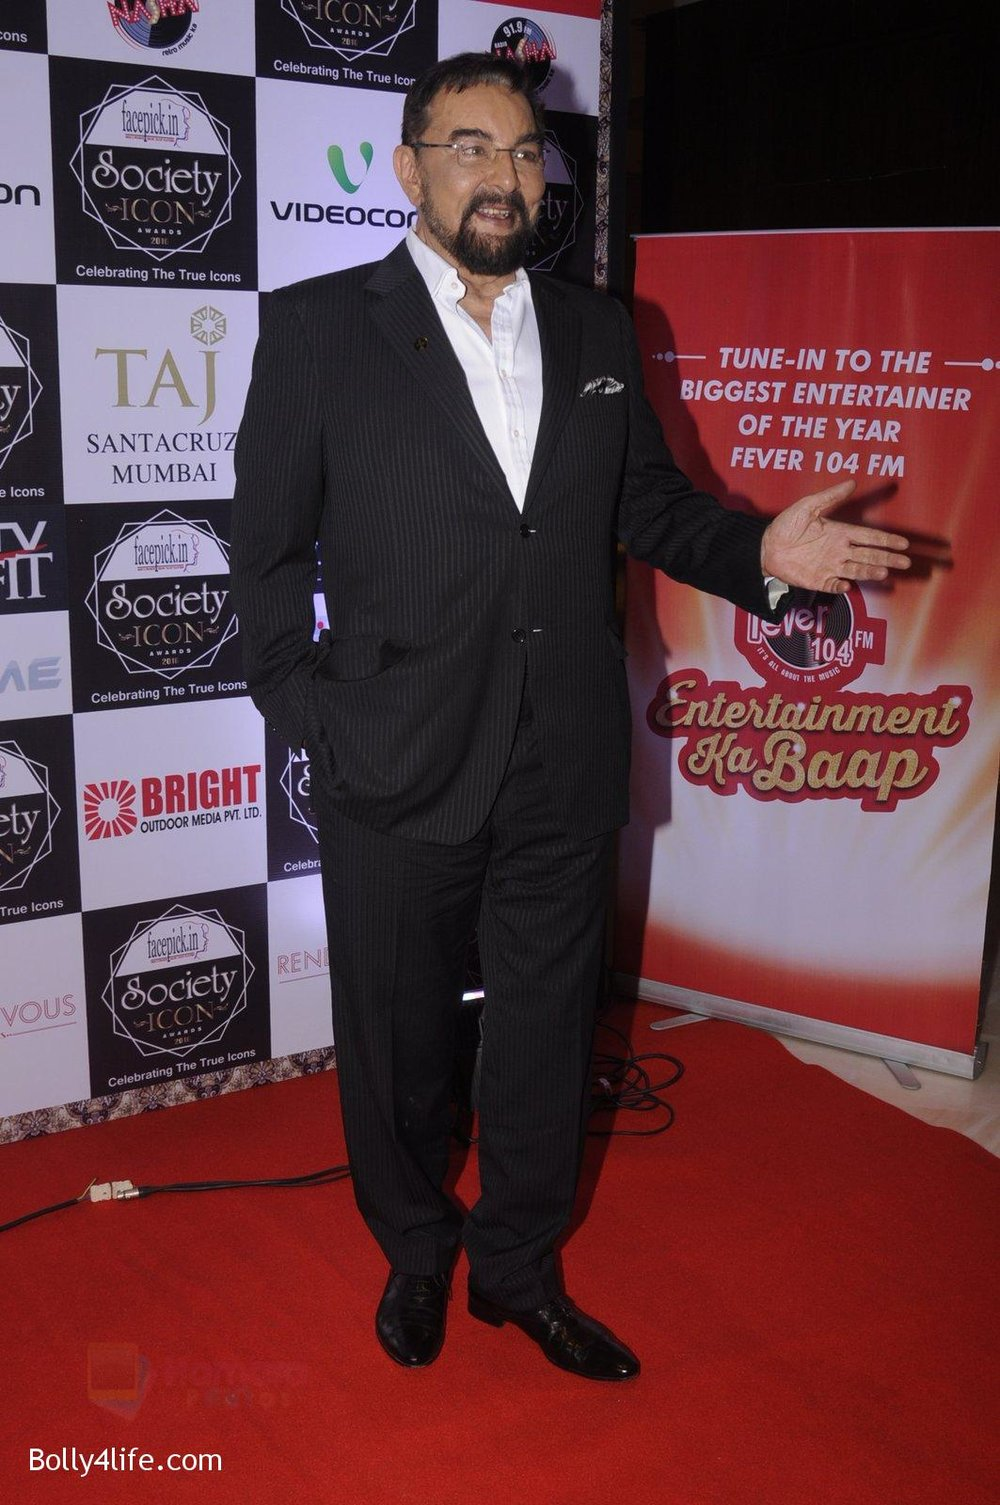 Kabir-Bedi-at-Society-Icon-Awards-on-2nd-Oct-2016-21.jpg